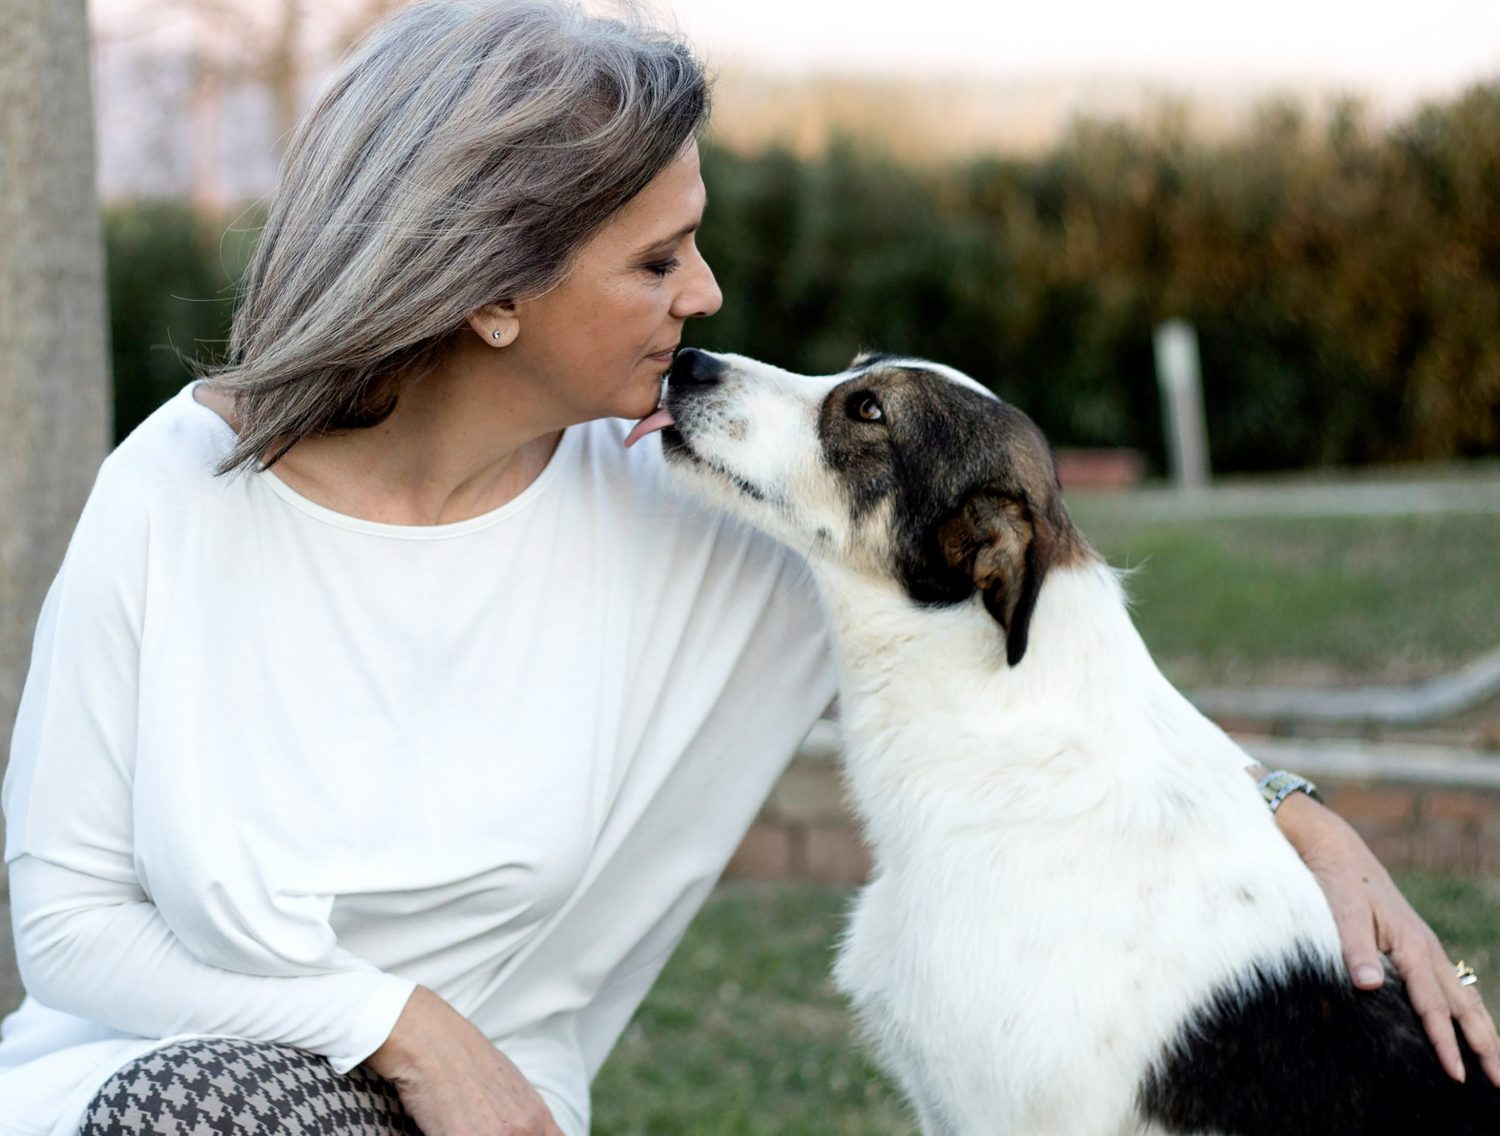 Woman with incontinence gets a dog kiss